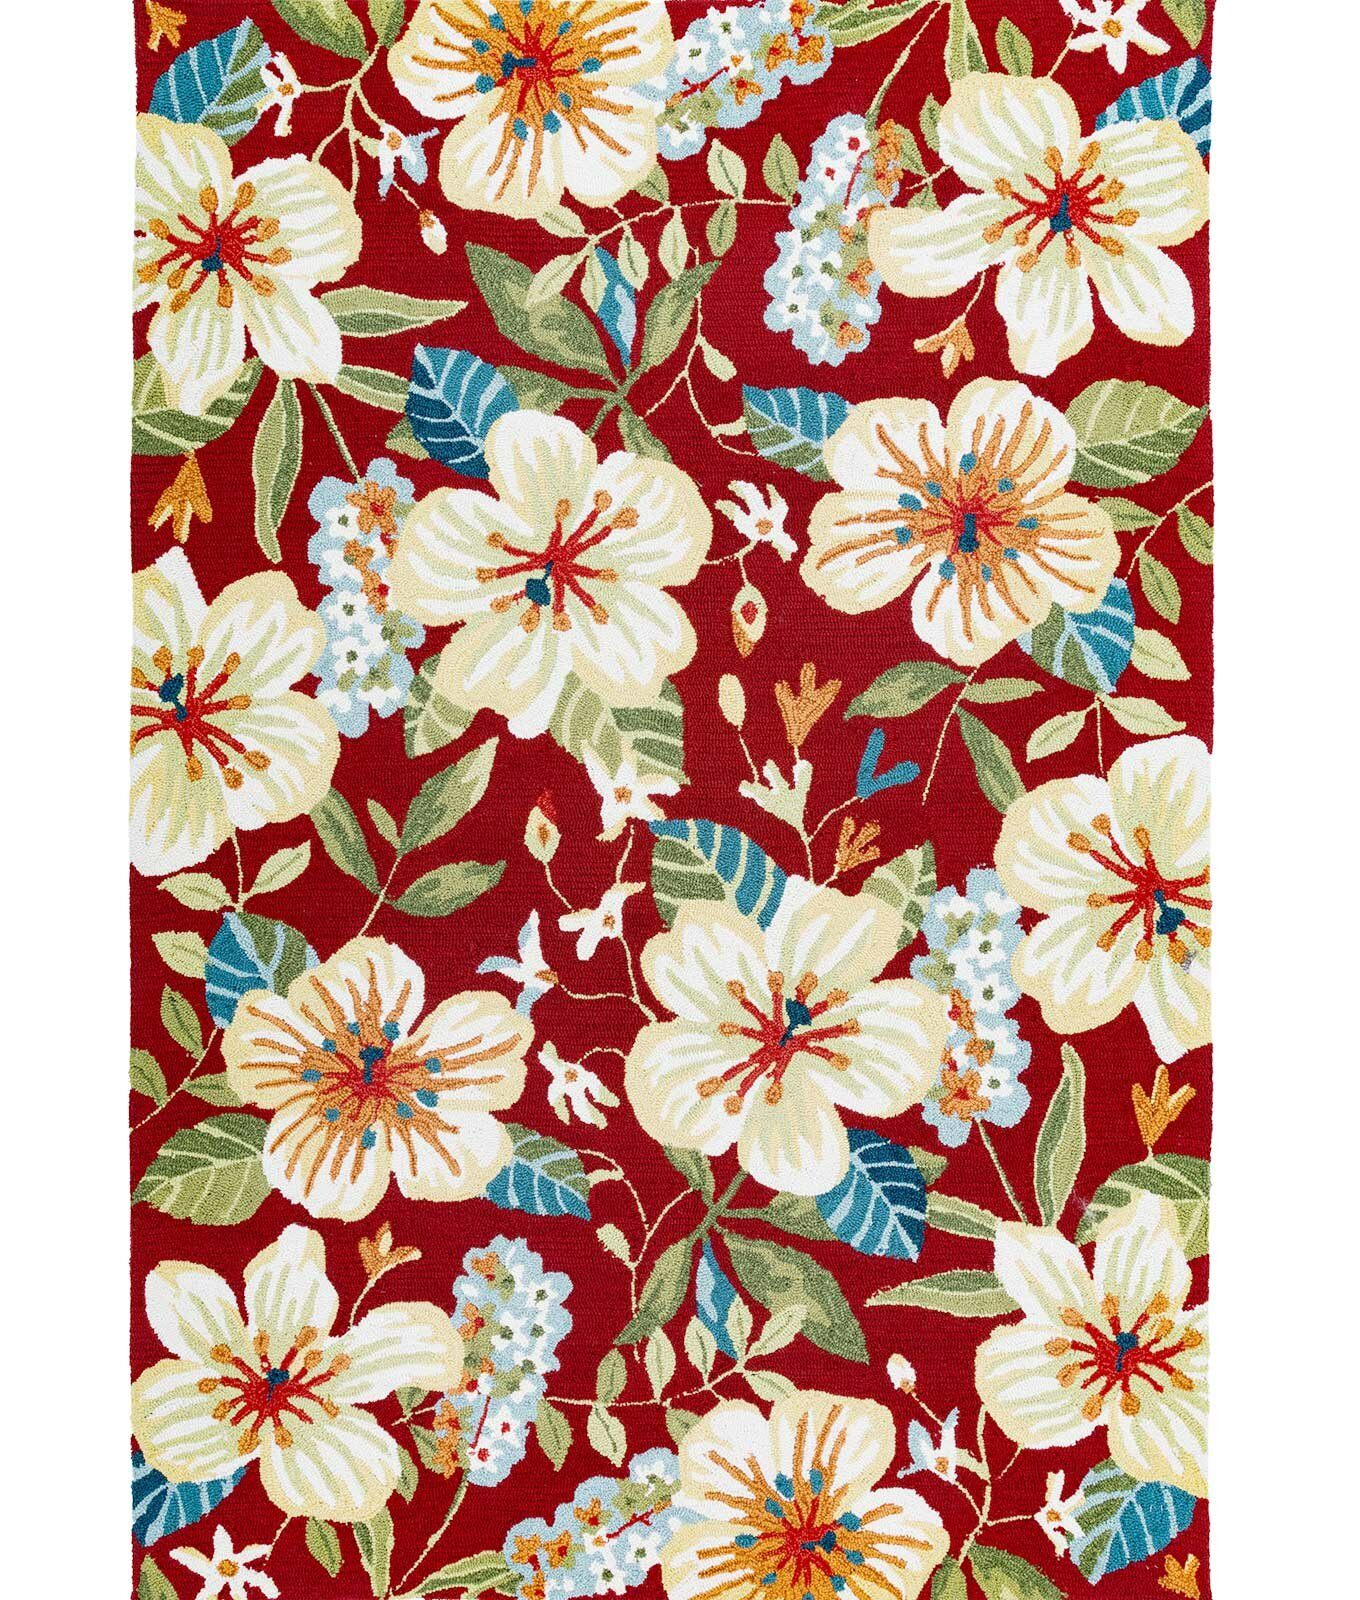 Bay Isle Home Sunday Floral Hand-Hooked Red/Beige/Teal